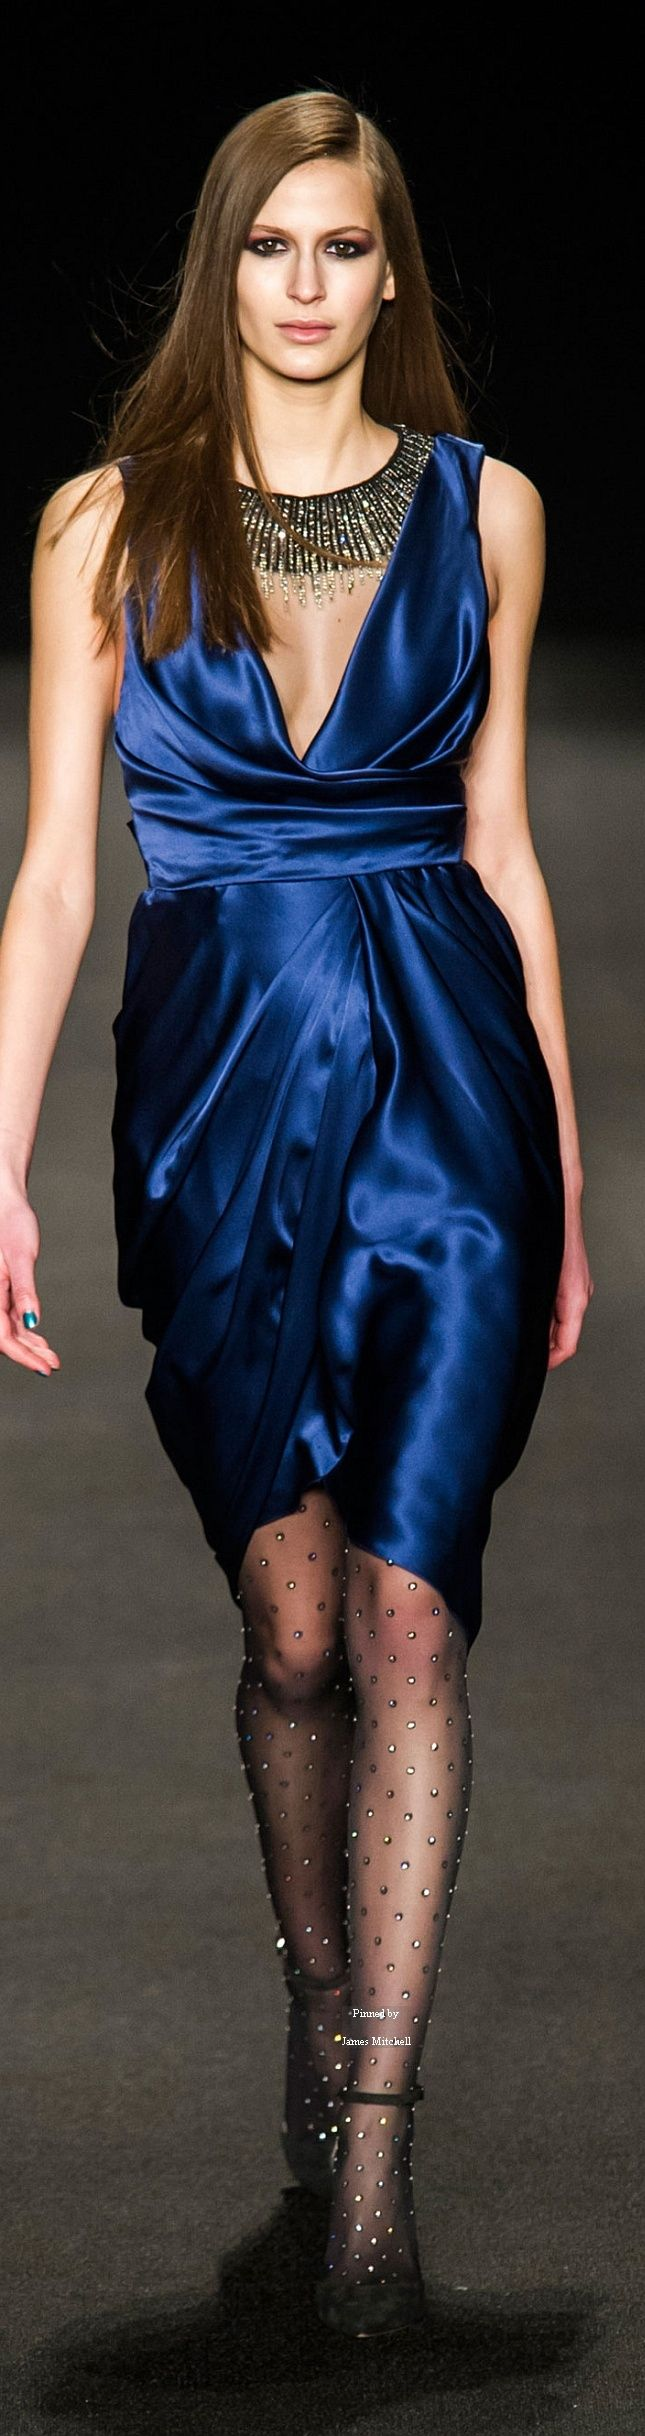 Monique Lhuillier Collection, fall 2015. | Fashion & Glamour & Luxury | Pinterest | Moni ...